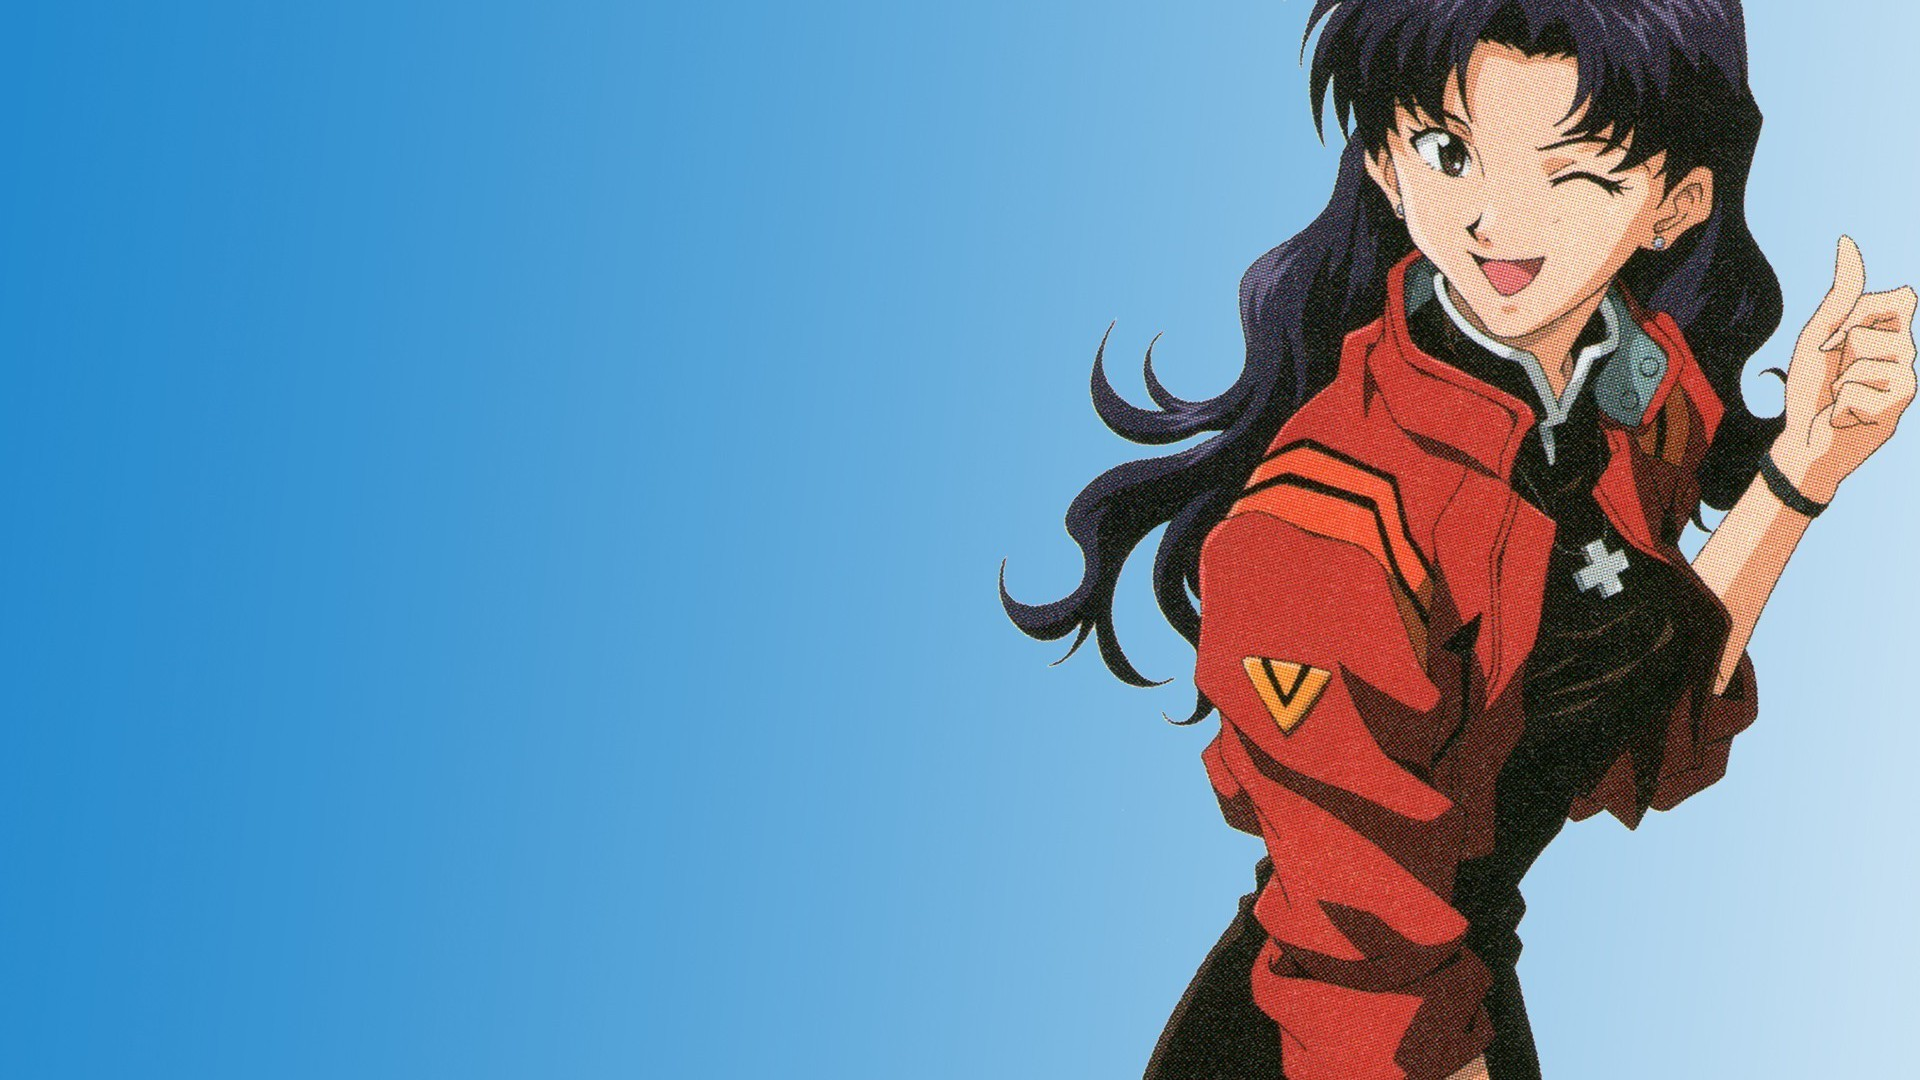 Iphone X Official Wallpaper Hd Download Misato Katsuragi Neon Genesis Evangelion Wallpaper